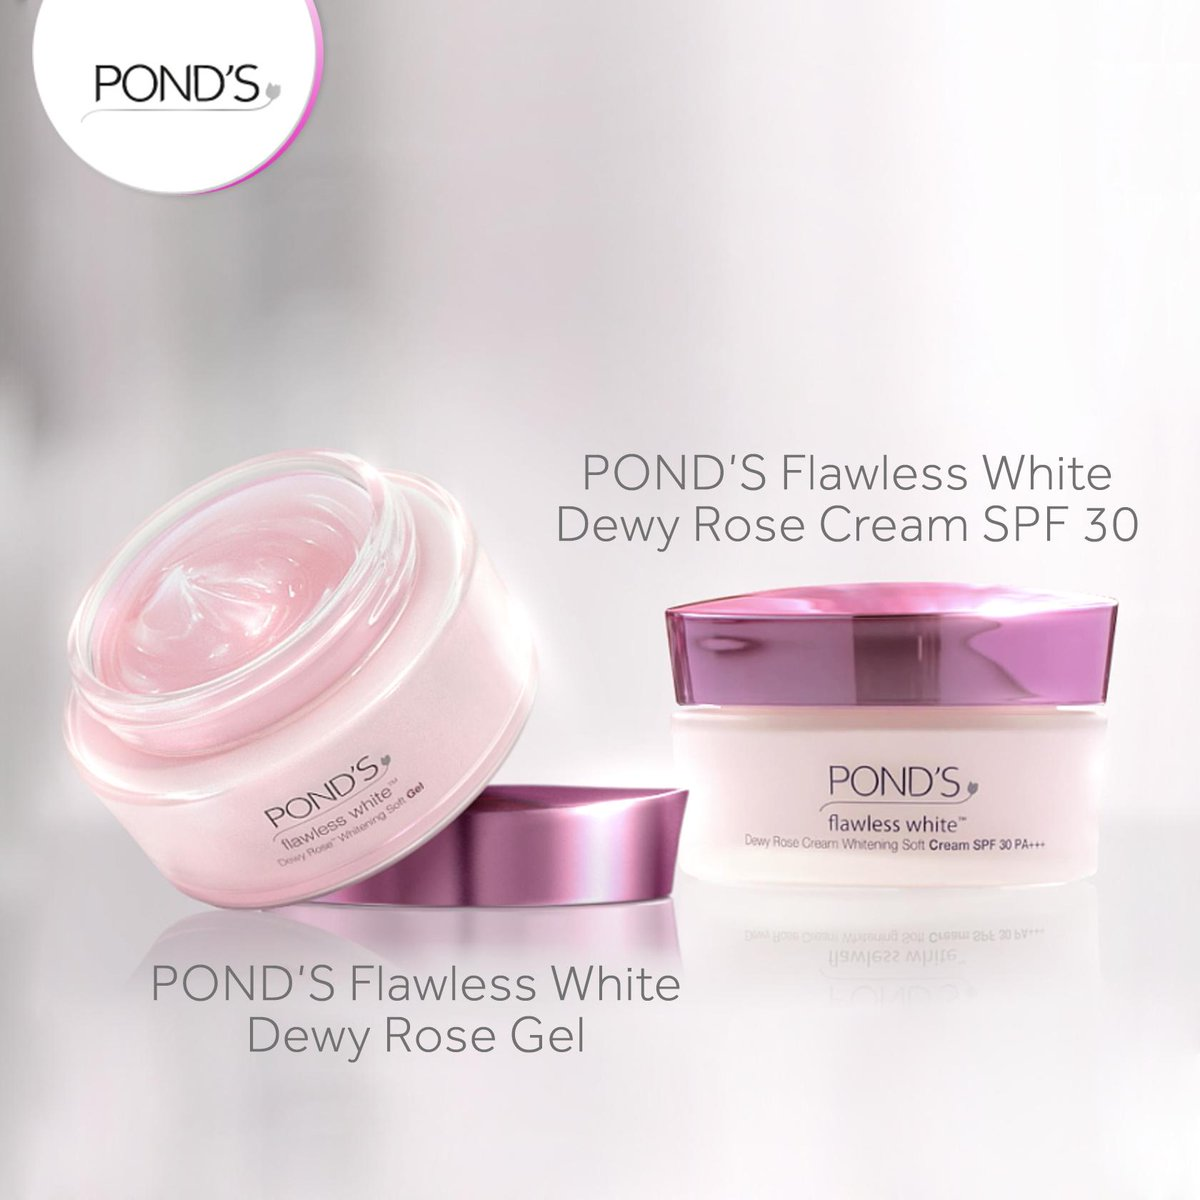 Harga Ponds Flawless White Lightening Day Cream Spf18 Pa Dan Pond S Brightening Night 10g Dewy Rose Spf 30 50g Terbaru